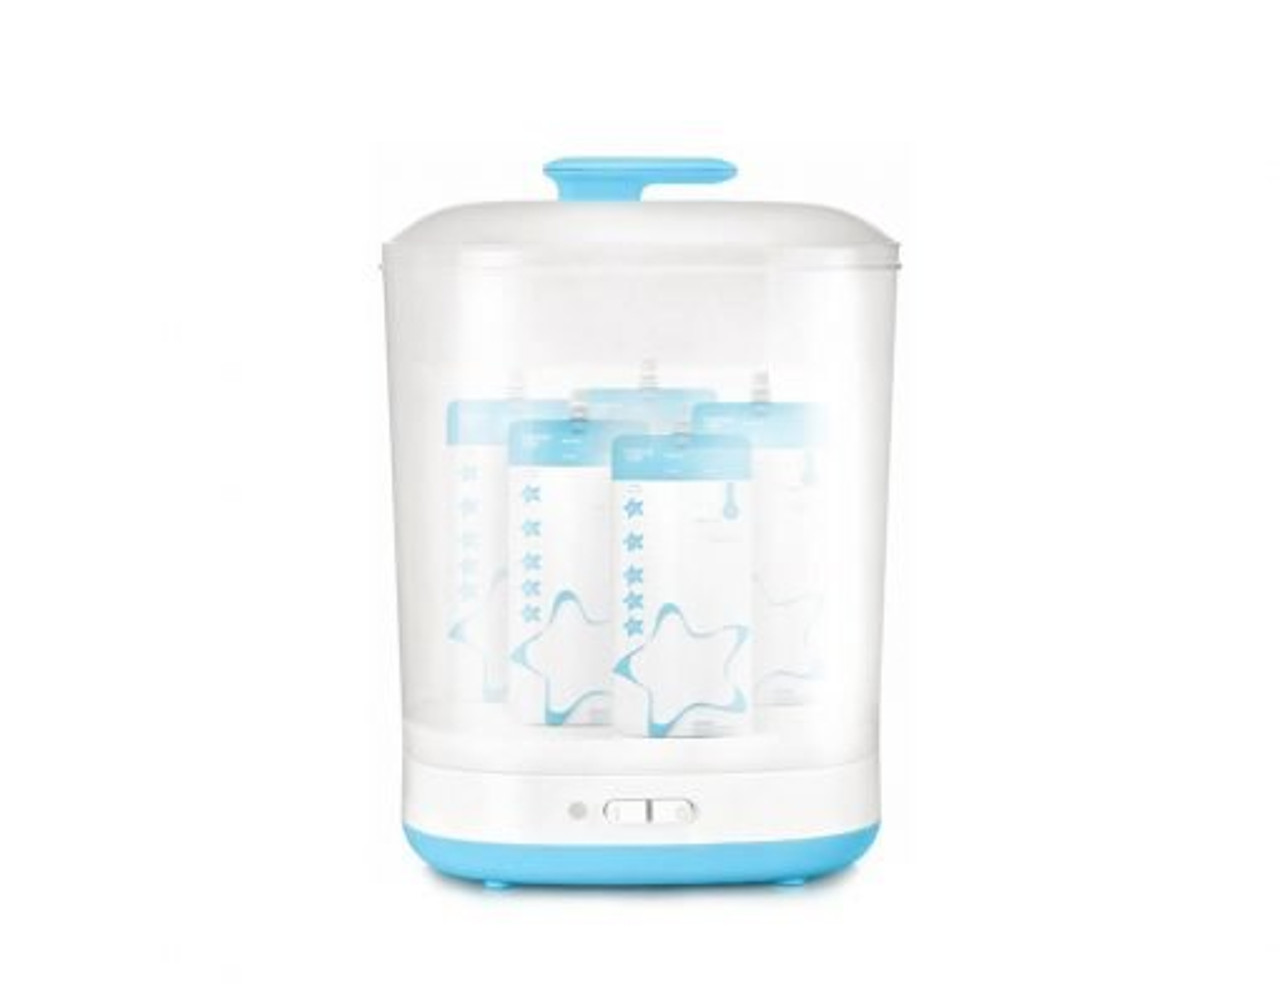 Cherub Baby Reusable ThermoSensor Breast Milk Storage Bags 50 Uses 10pk at Baby Barn Discount Storing milk is a breeze with these Reusable Breast Milk Storage Bags,  the ThermoSensor technology shows when the milk is an ideal temperature for baby.